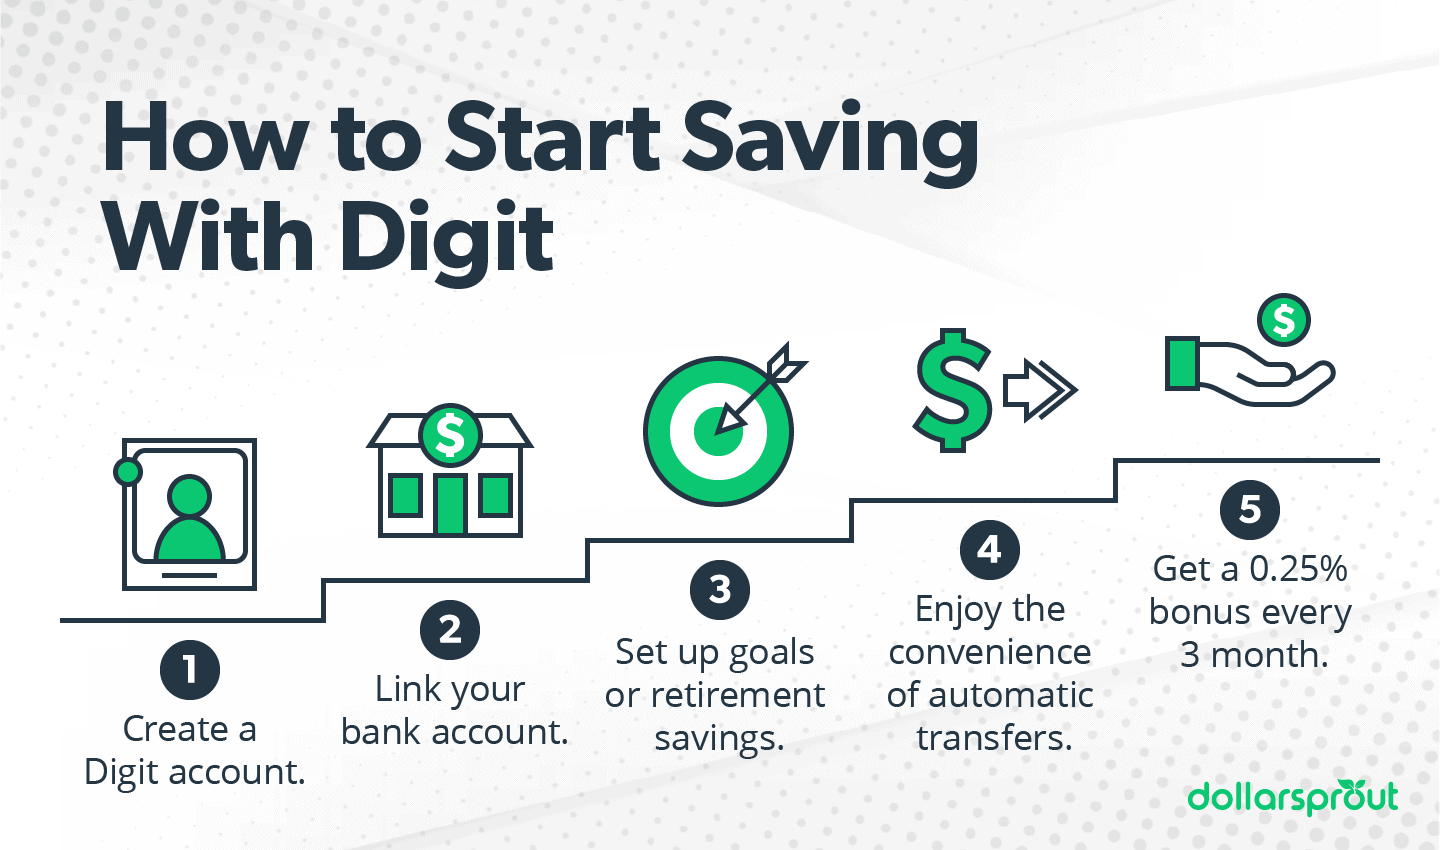 How to Start Saving With Digit